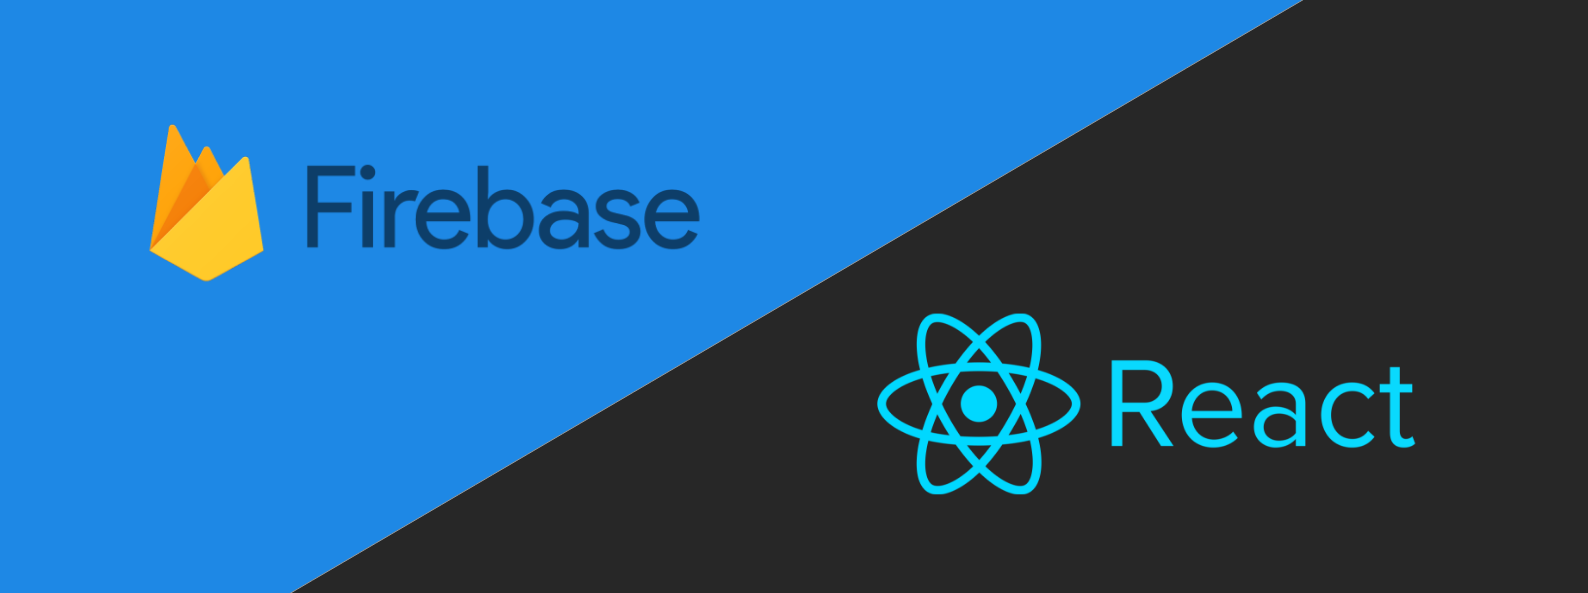 firebase and react